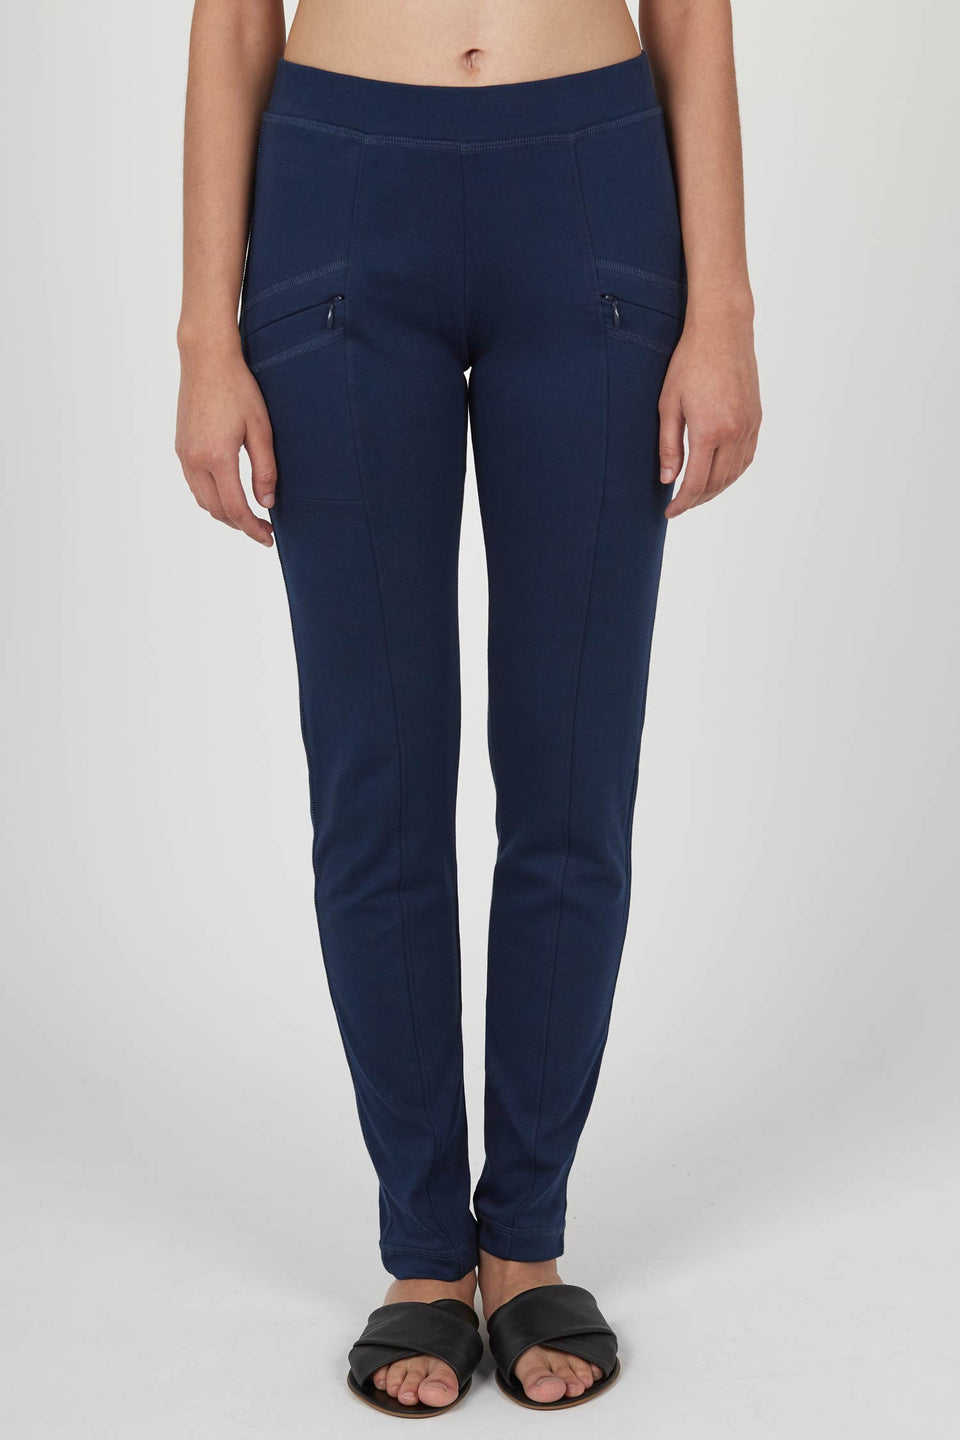 Essential Riding Pant in Navy